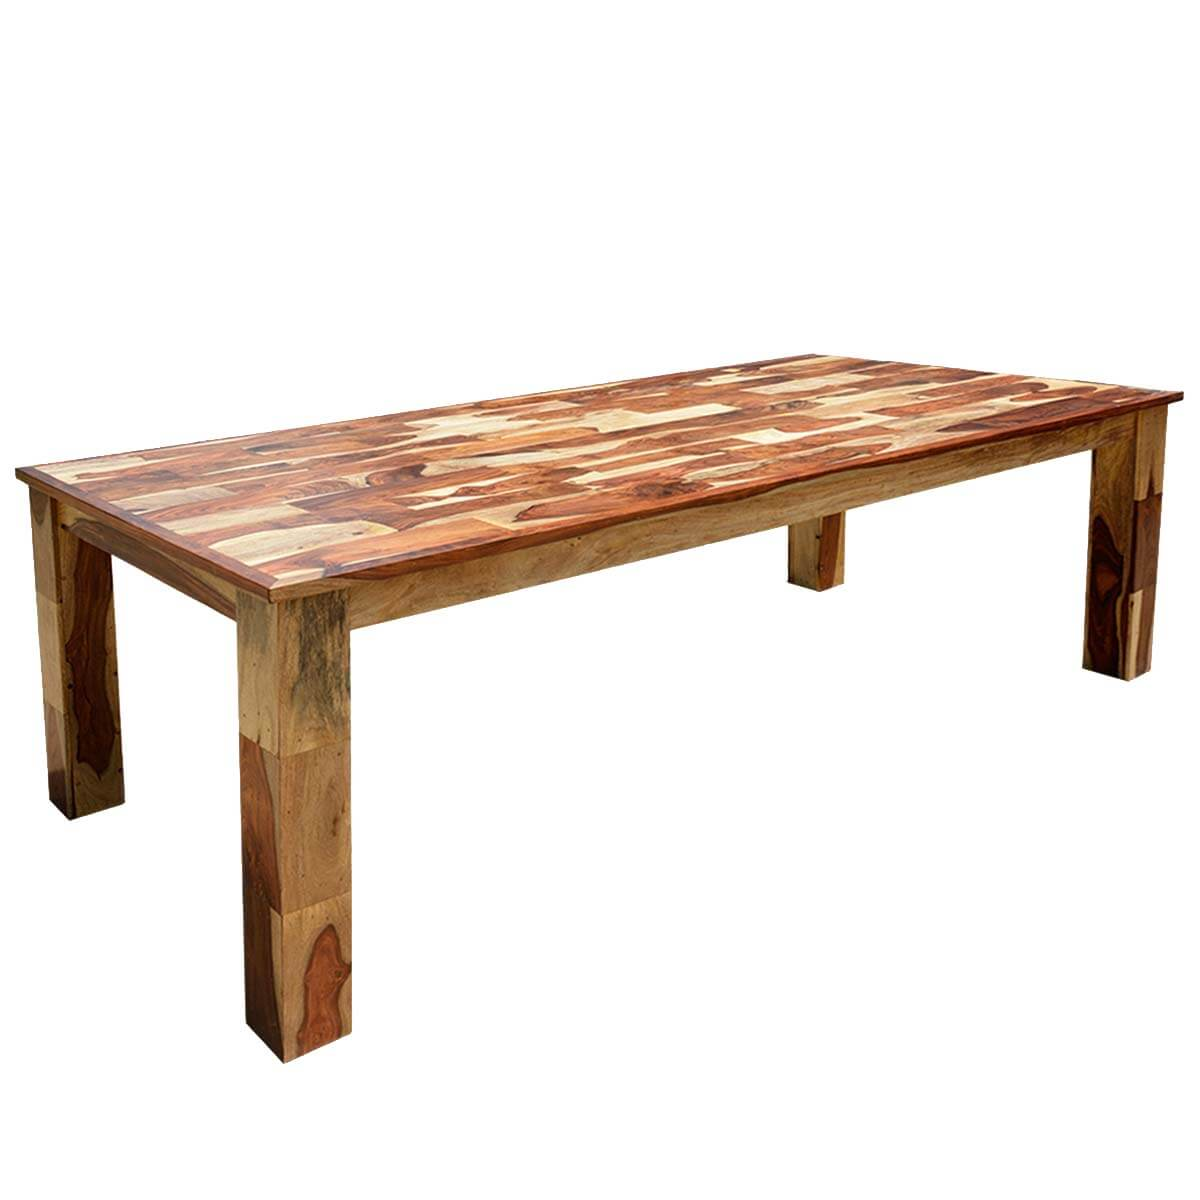 Cariboo rustic solid wood large rectangular dining table for Hardwood dining table